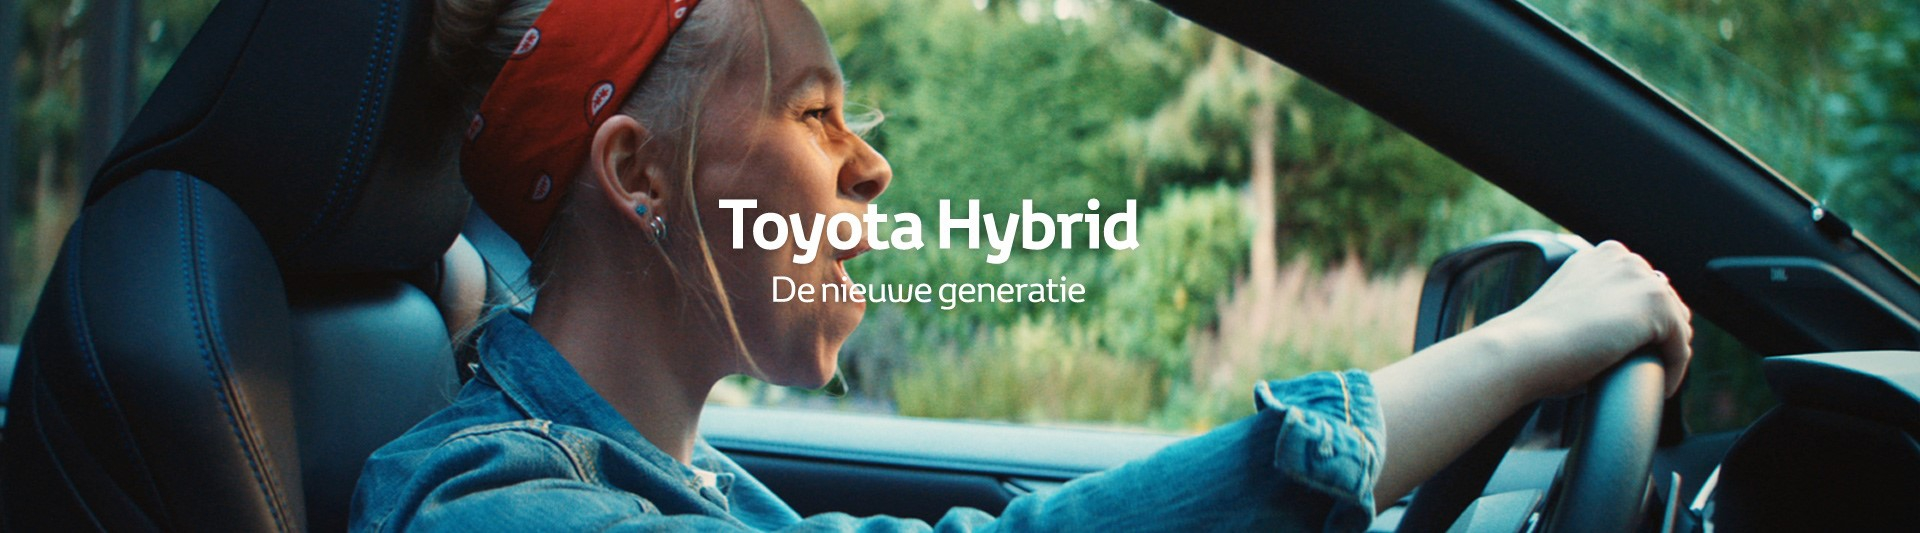 Toyota_visual_dealerwebsites.jpg